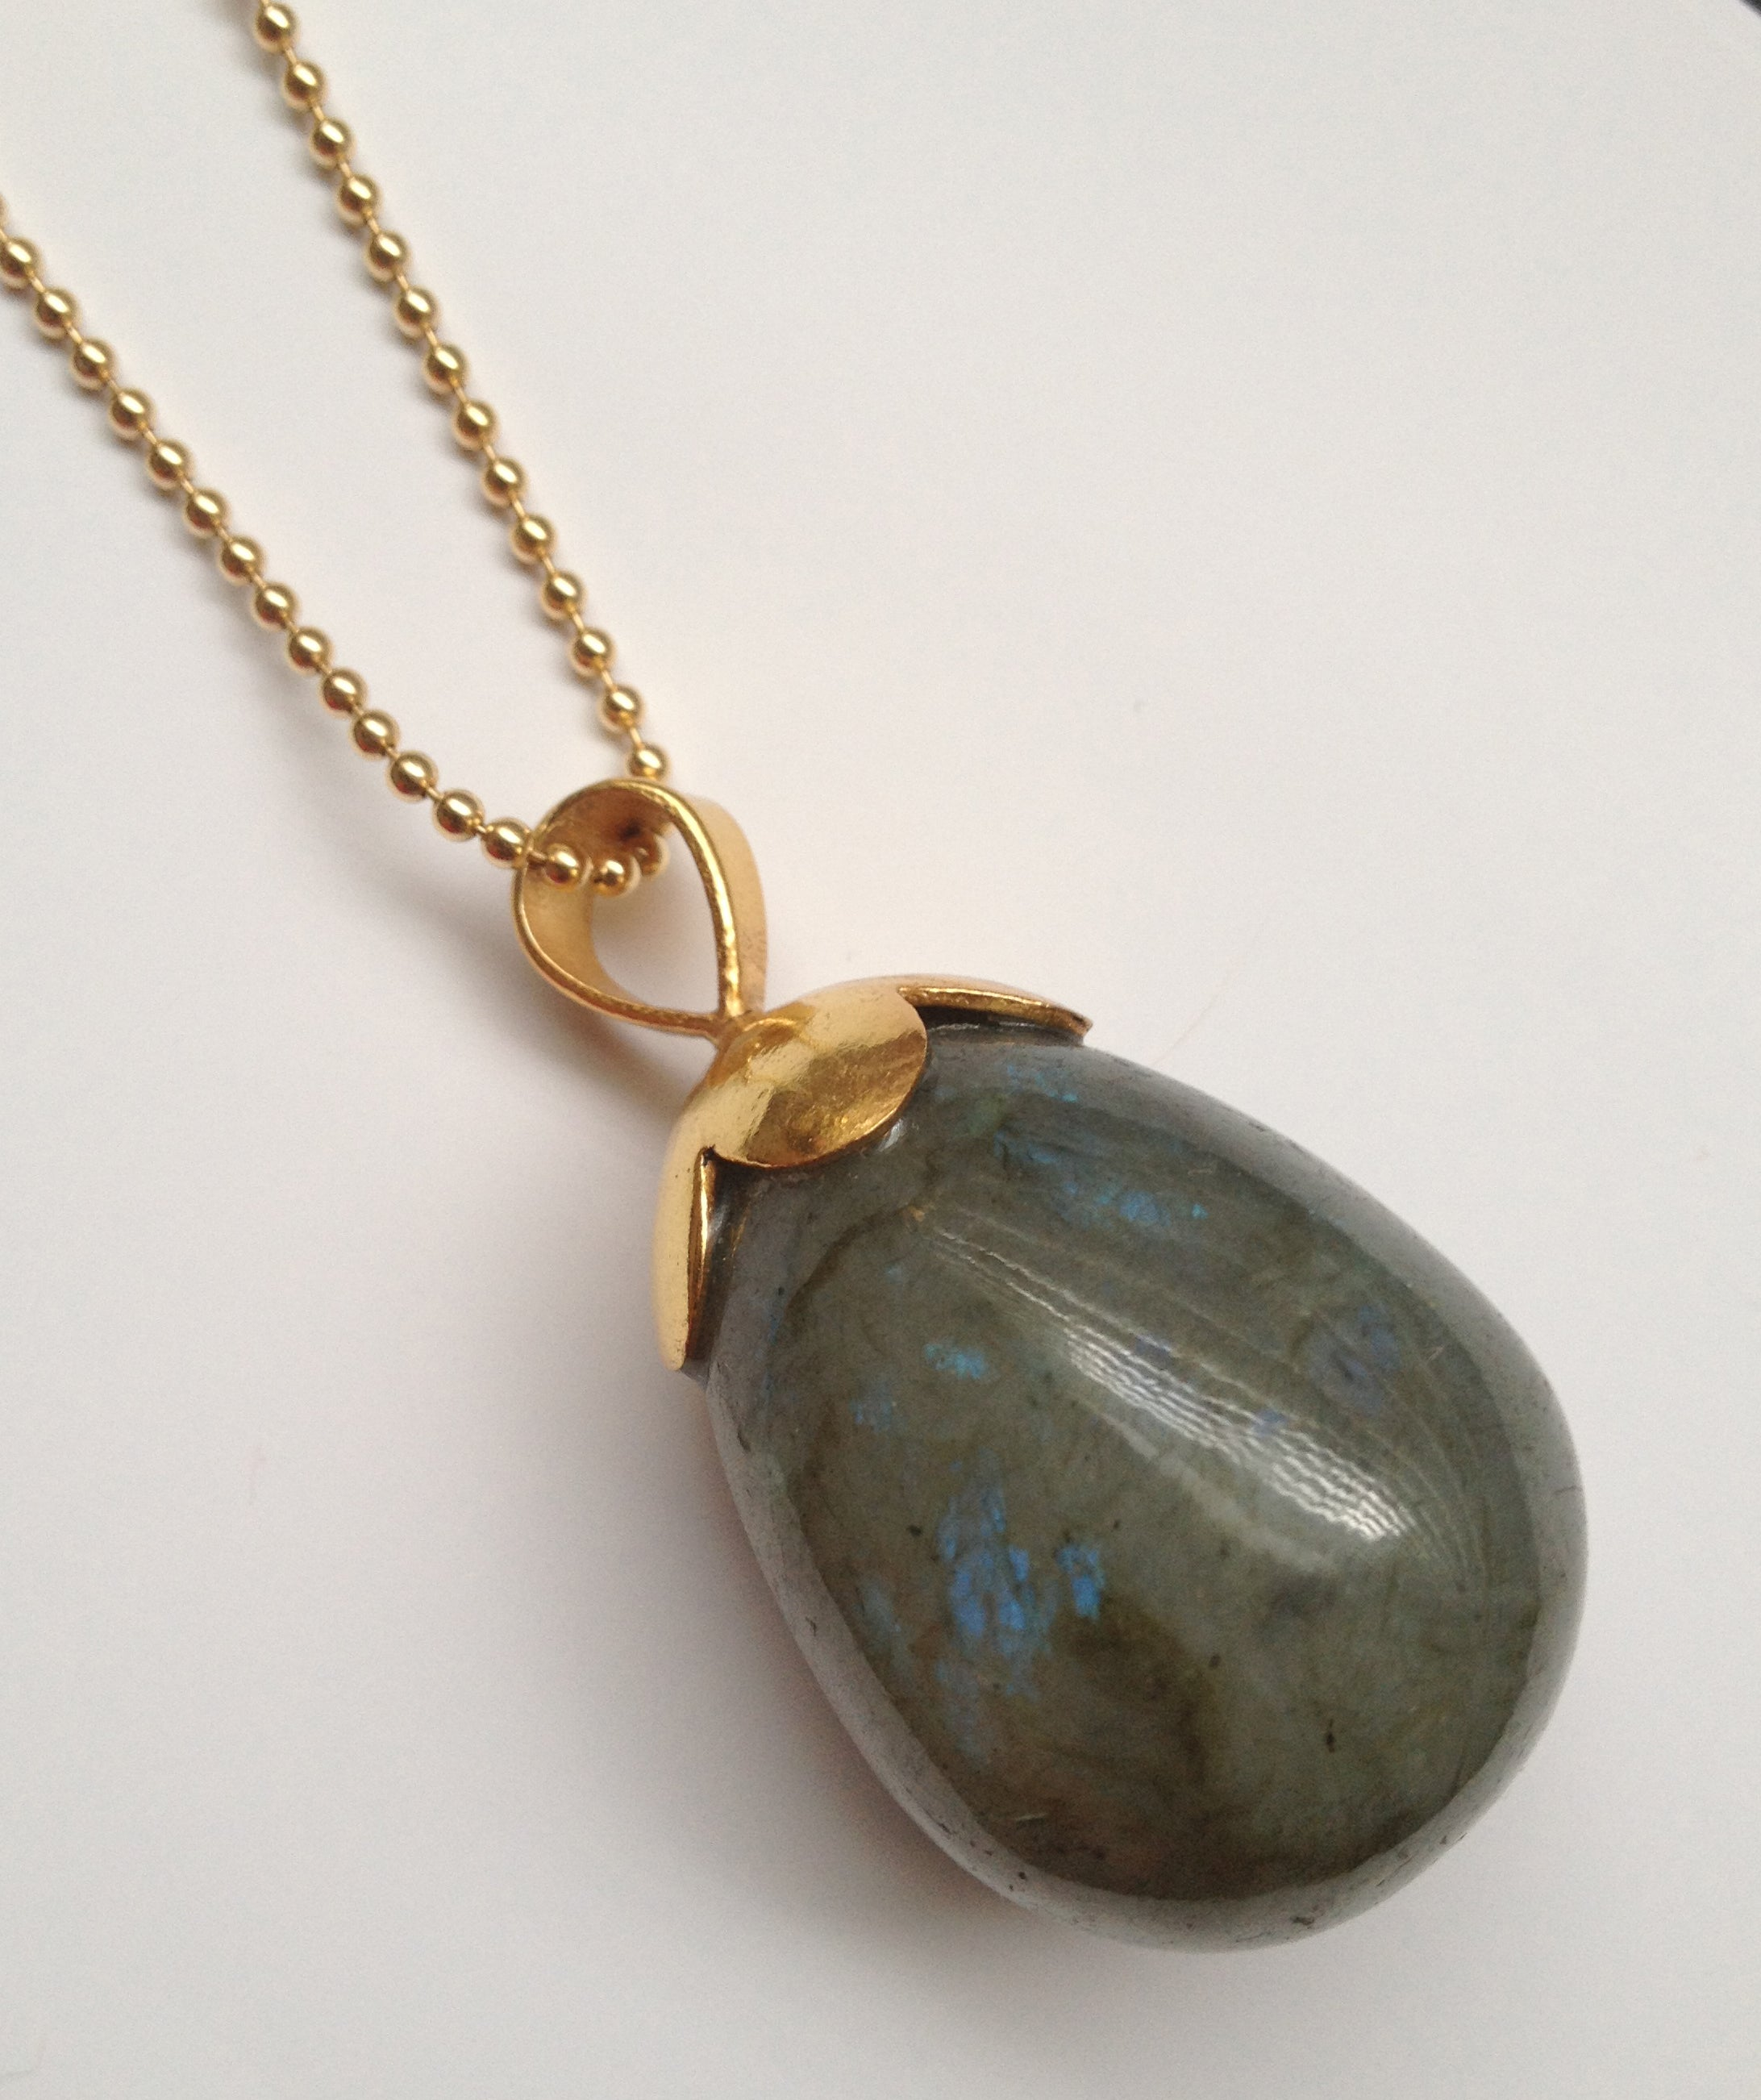 New Gisbon Design in Labradorite.